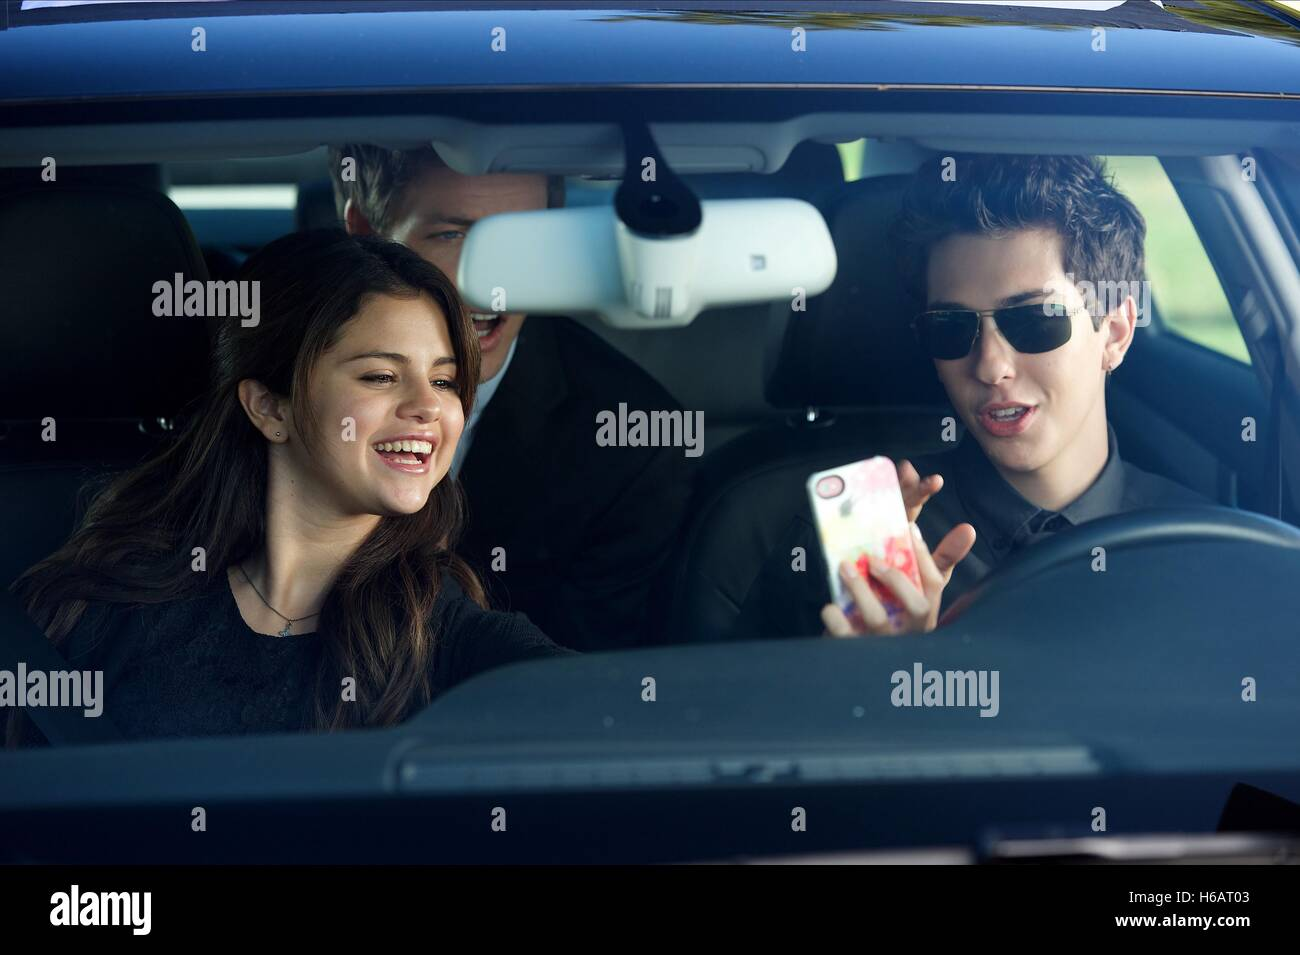 SELENA GOMEZ & NAT WOLFF BEHAVING BADLY (2014) - Stock Image